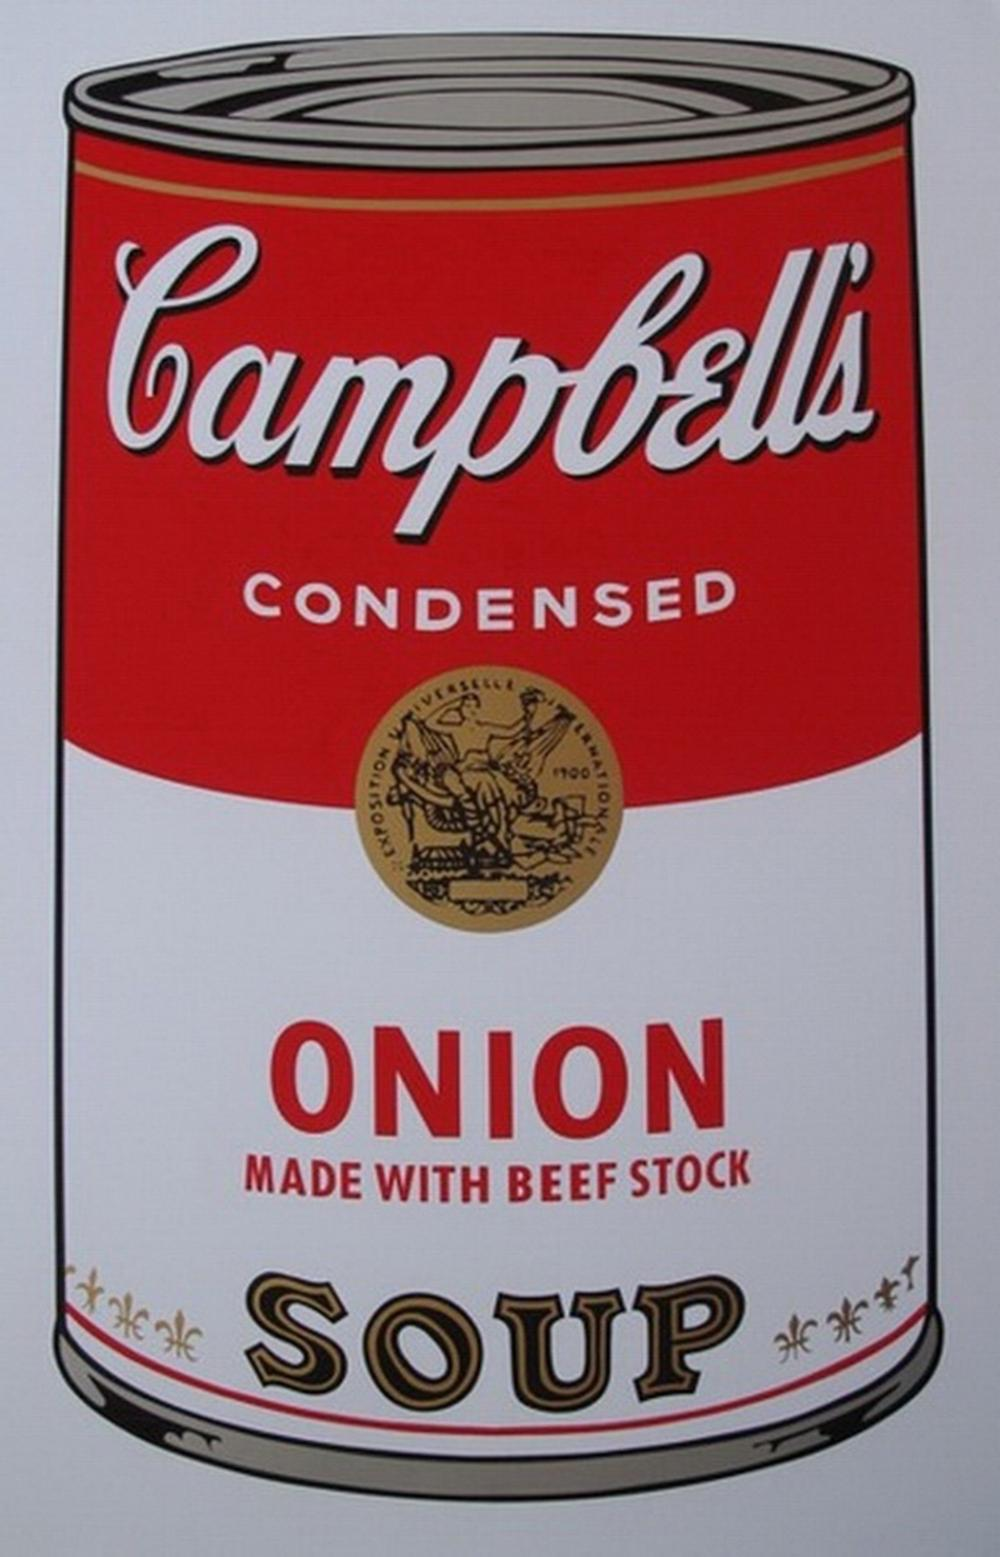 ANDY WARHOL ONION SOUP CAN